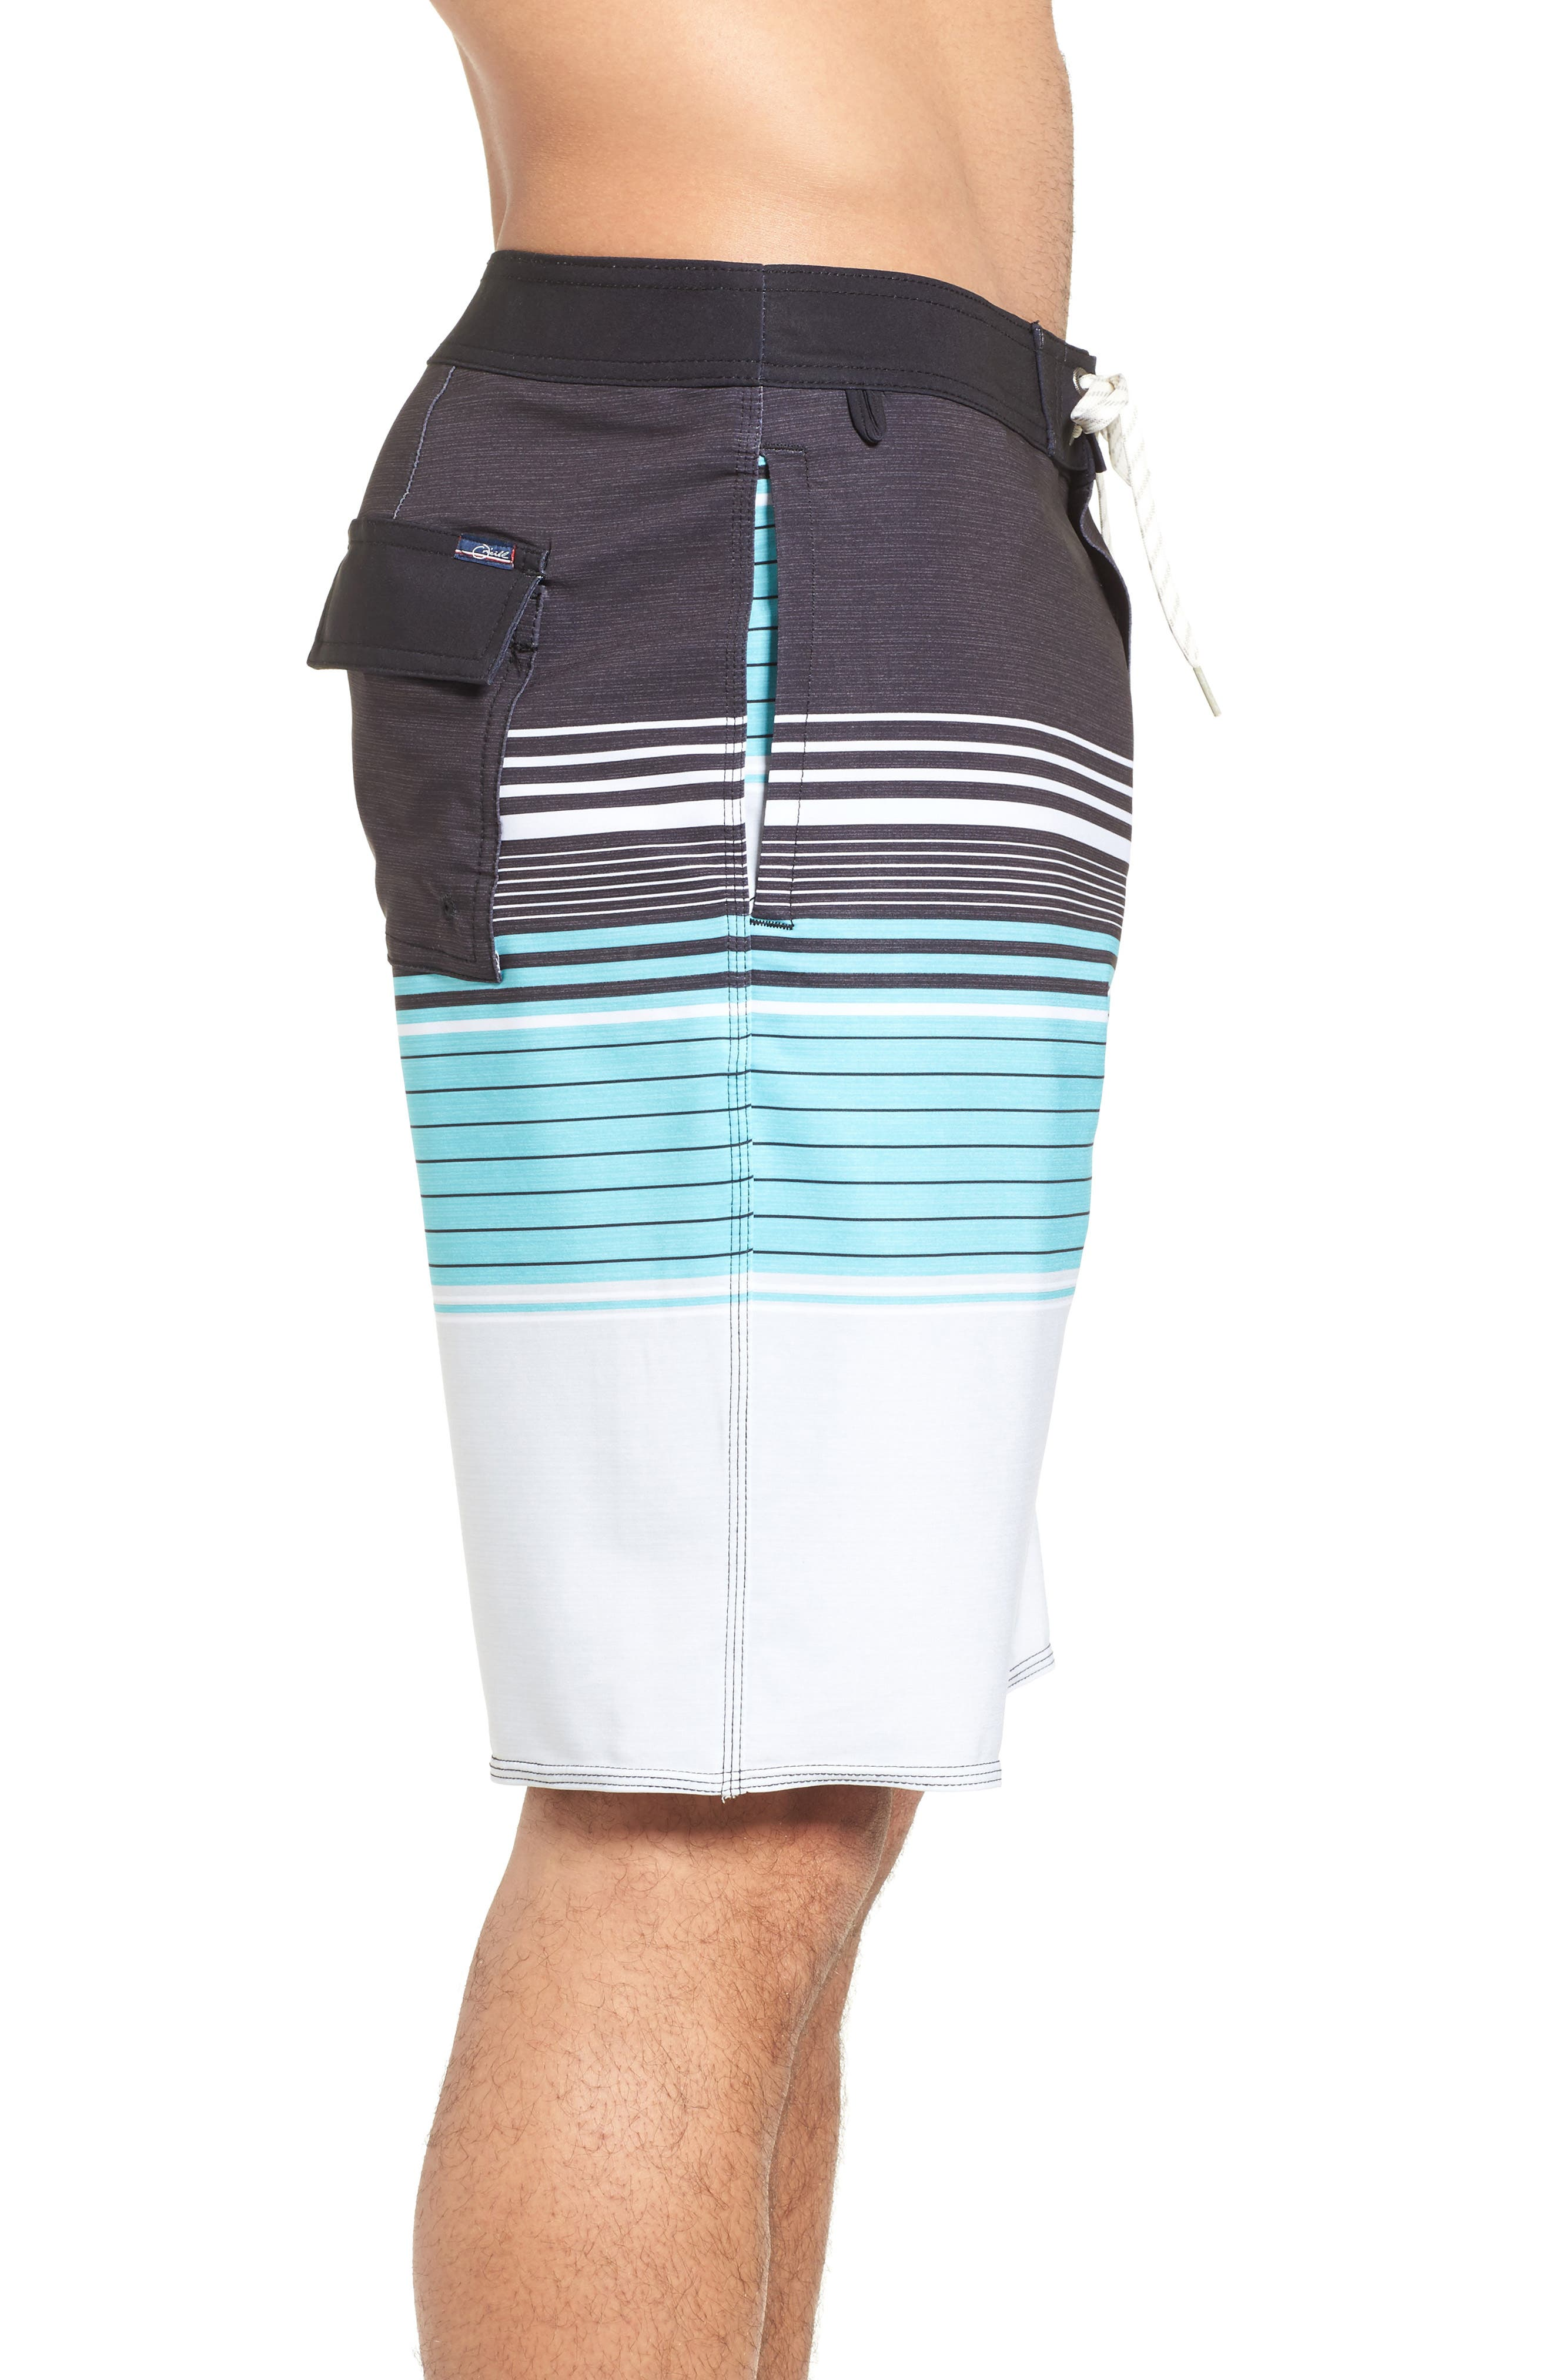 Frontiers Stretch Board Shorts,                             Alternate thumbnail 3, color,                             001